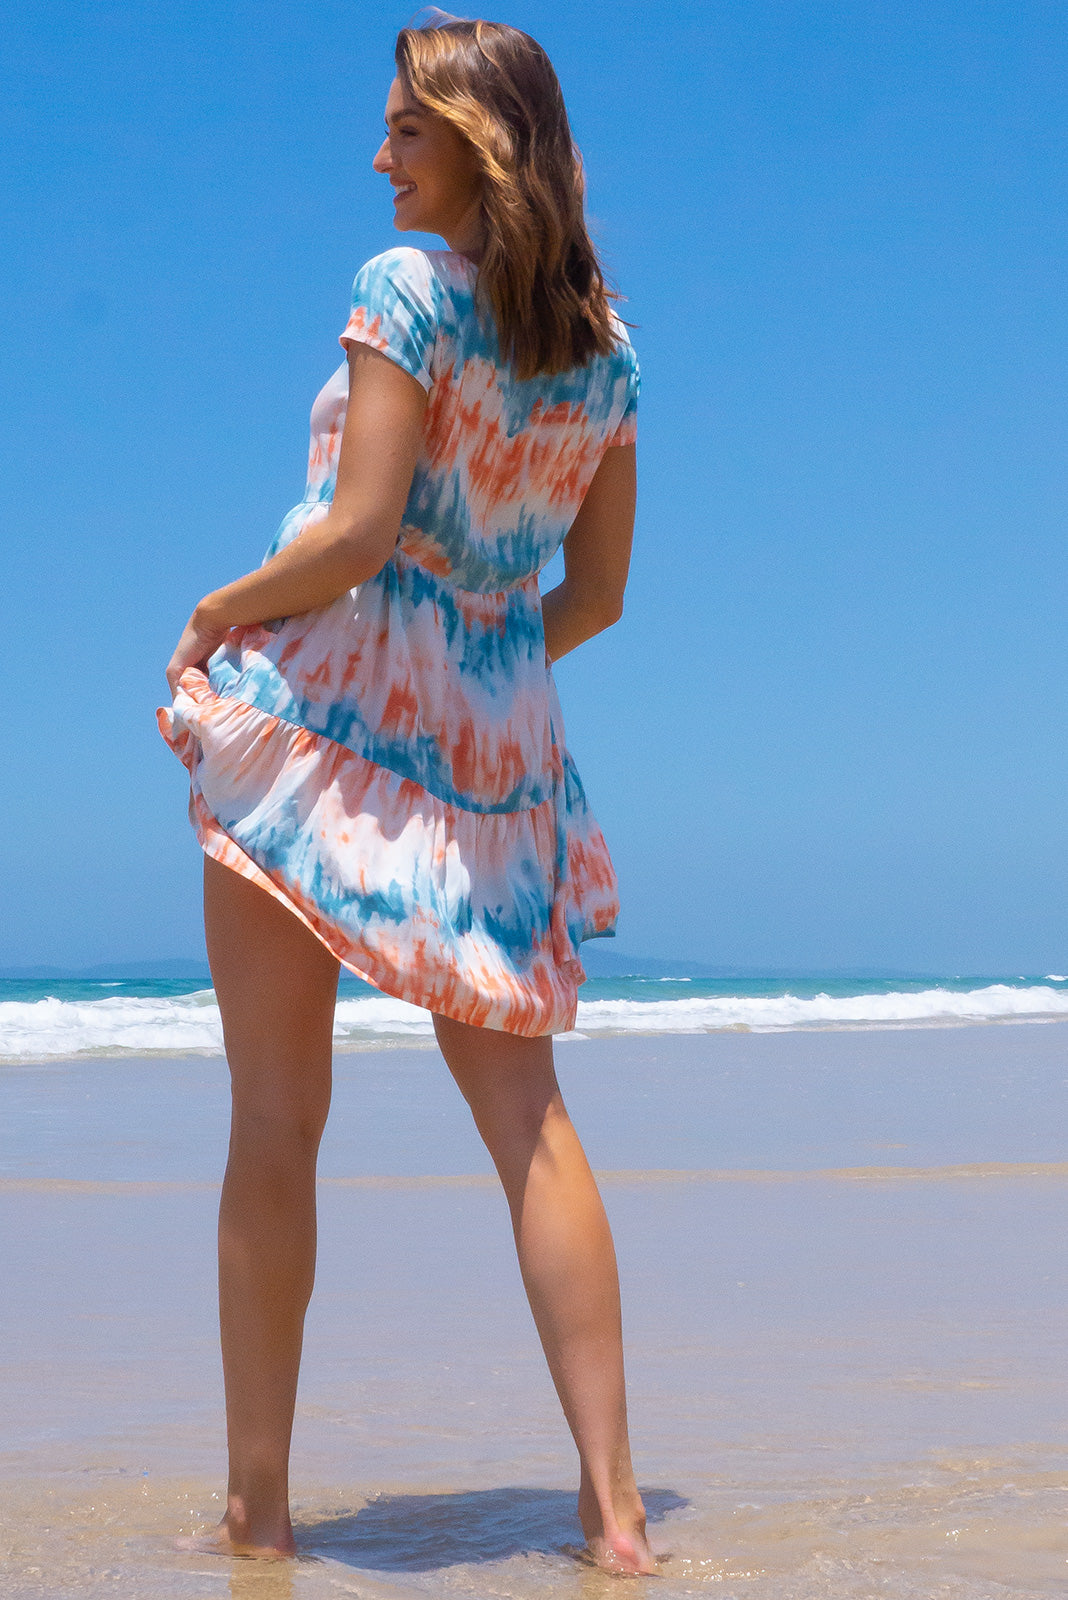 The Georgie Earth and Sea Dress features functional button front, cap sleeves, adjustable side tabs, side pockets, frilled hem and 100% rayon in blue, rust and white tie dye.